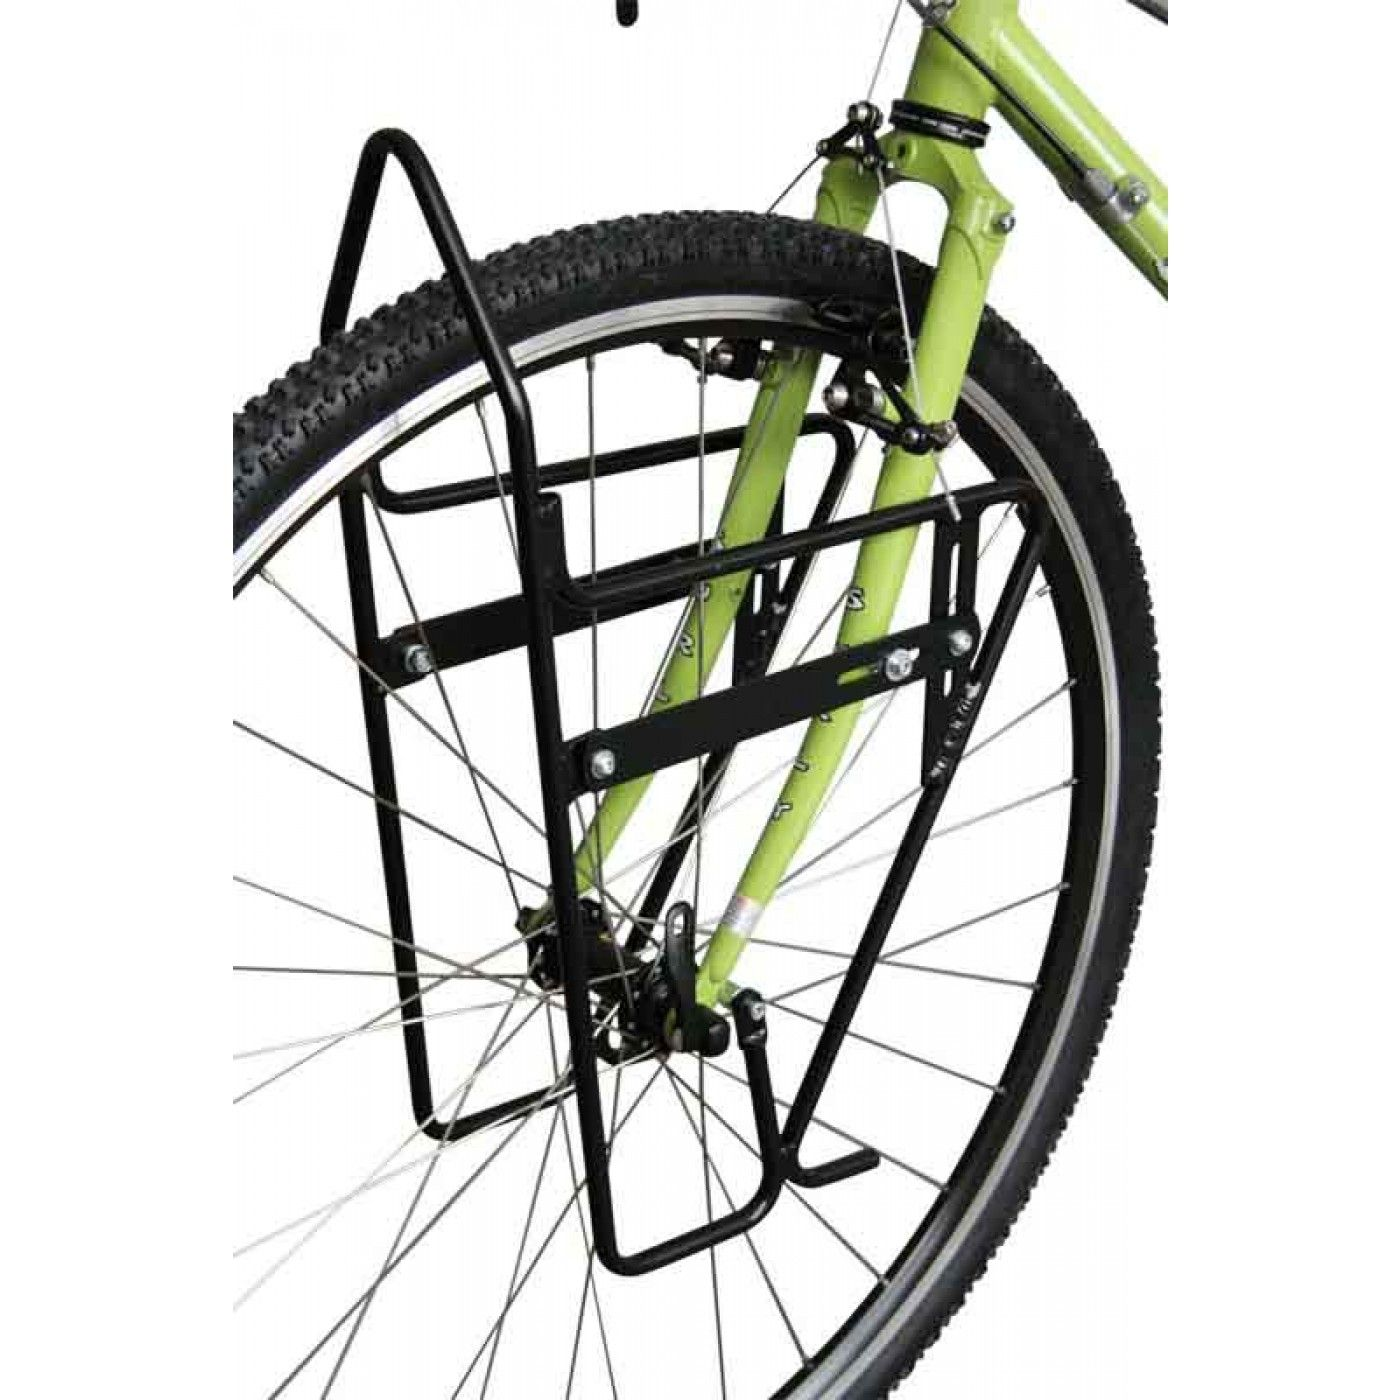 Arkel Ac Lowrider Front Rack On Surley Cross Cicloturism